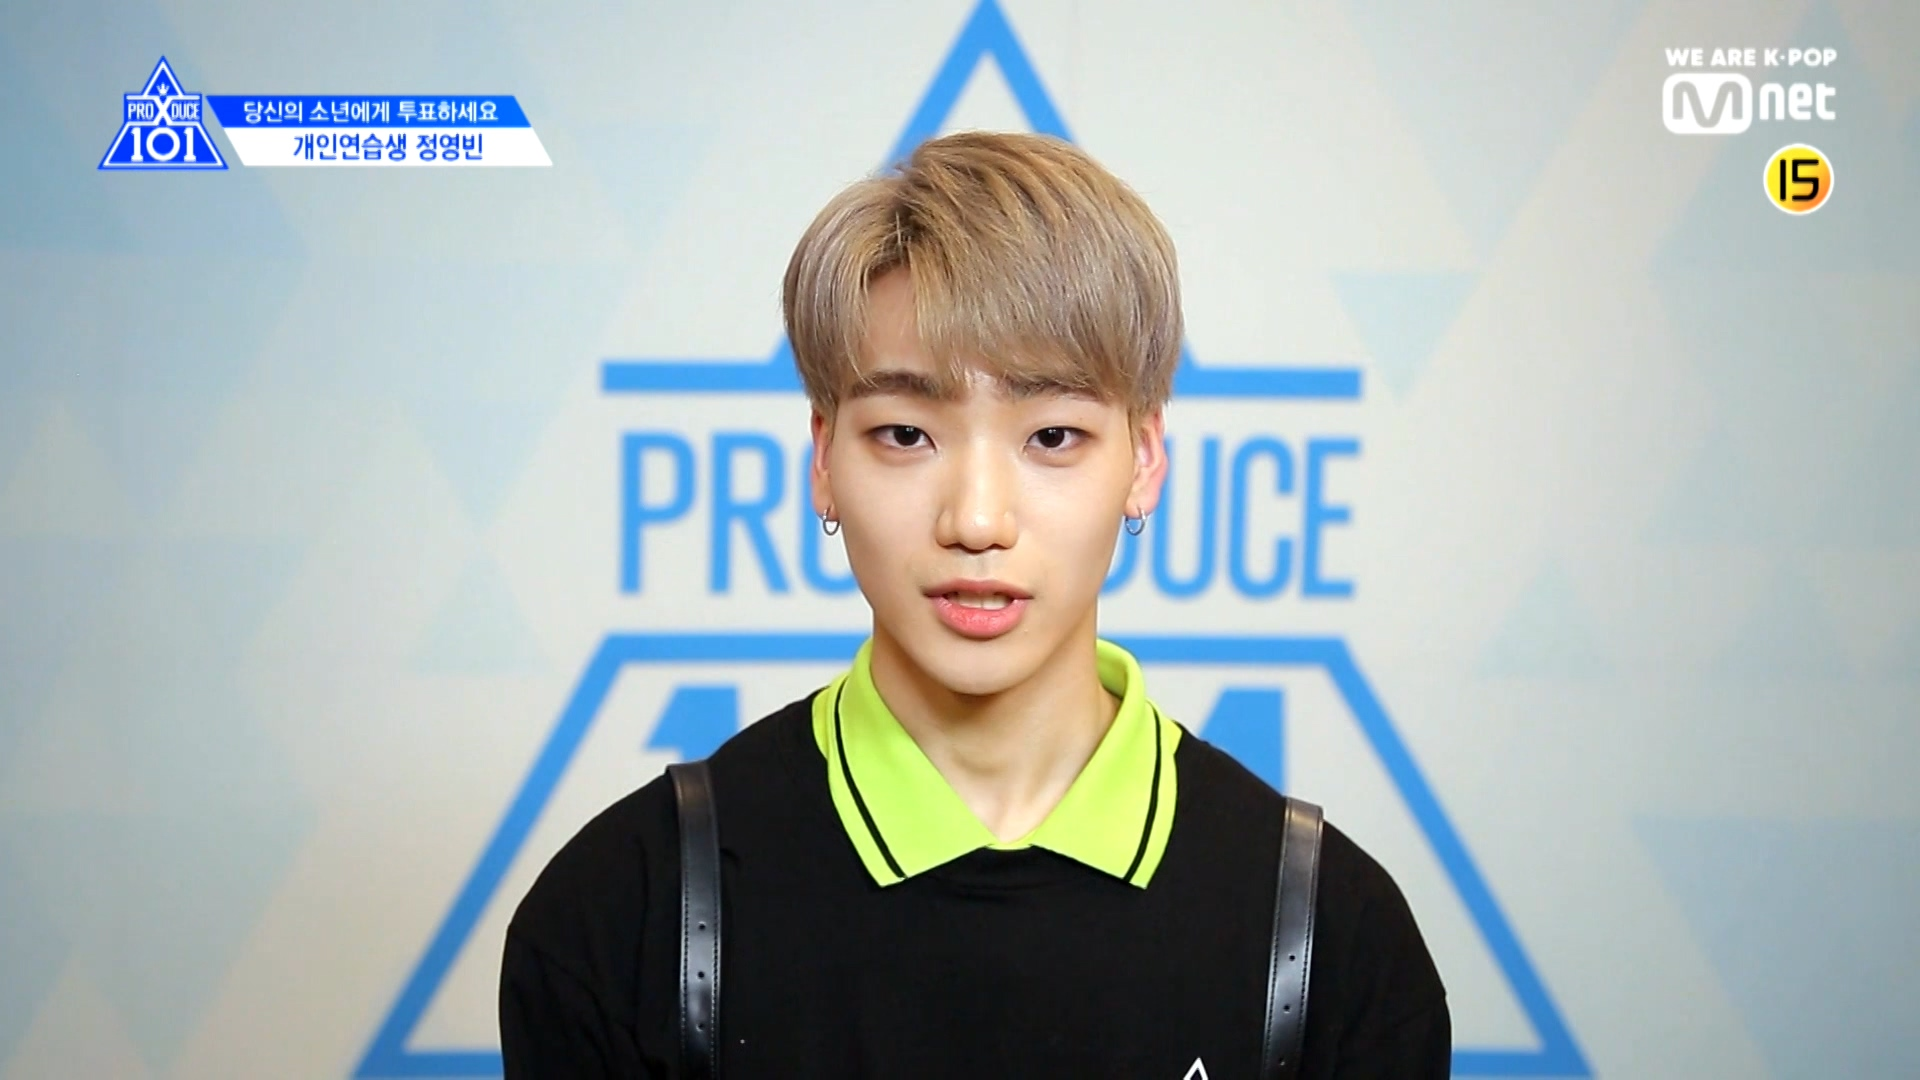 [PRODUCE X 101] EYE CONTACT CHALLENGE l JUNG YOUNG BIN(Independent Trainee)